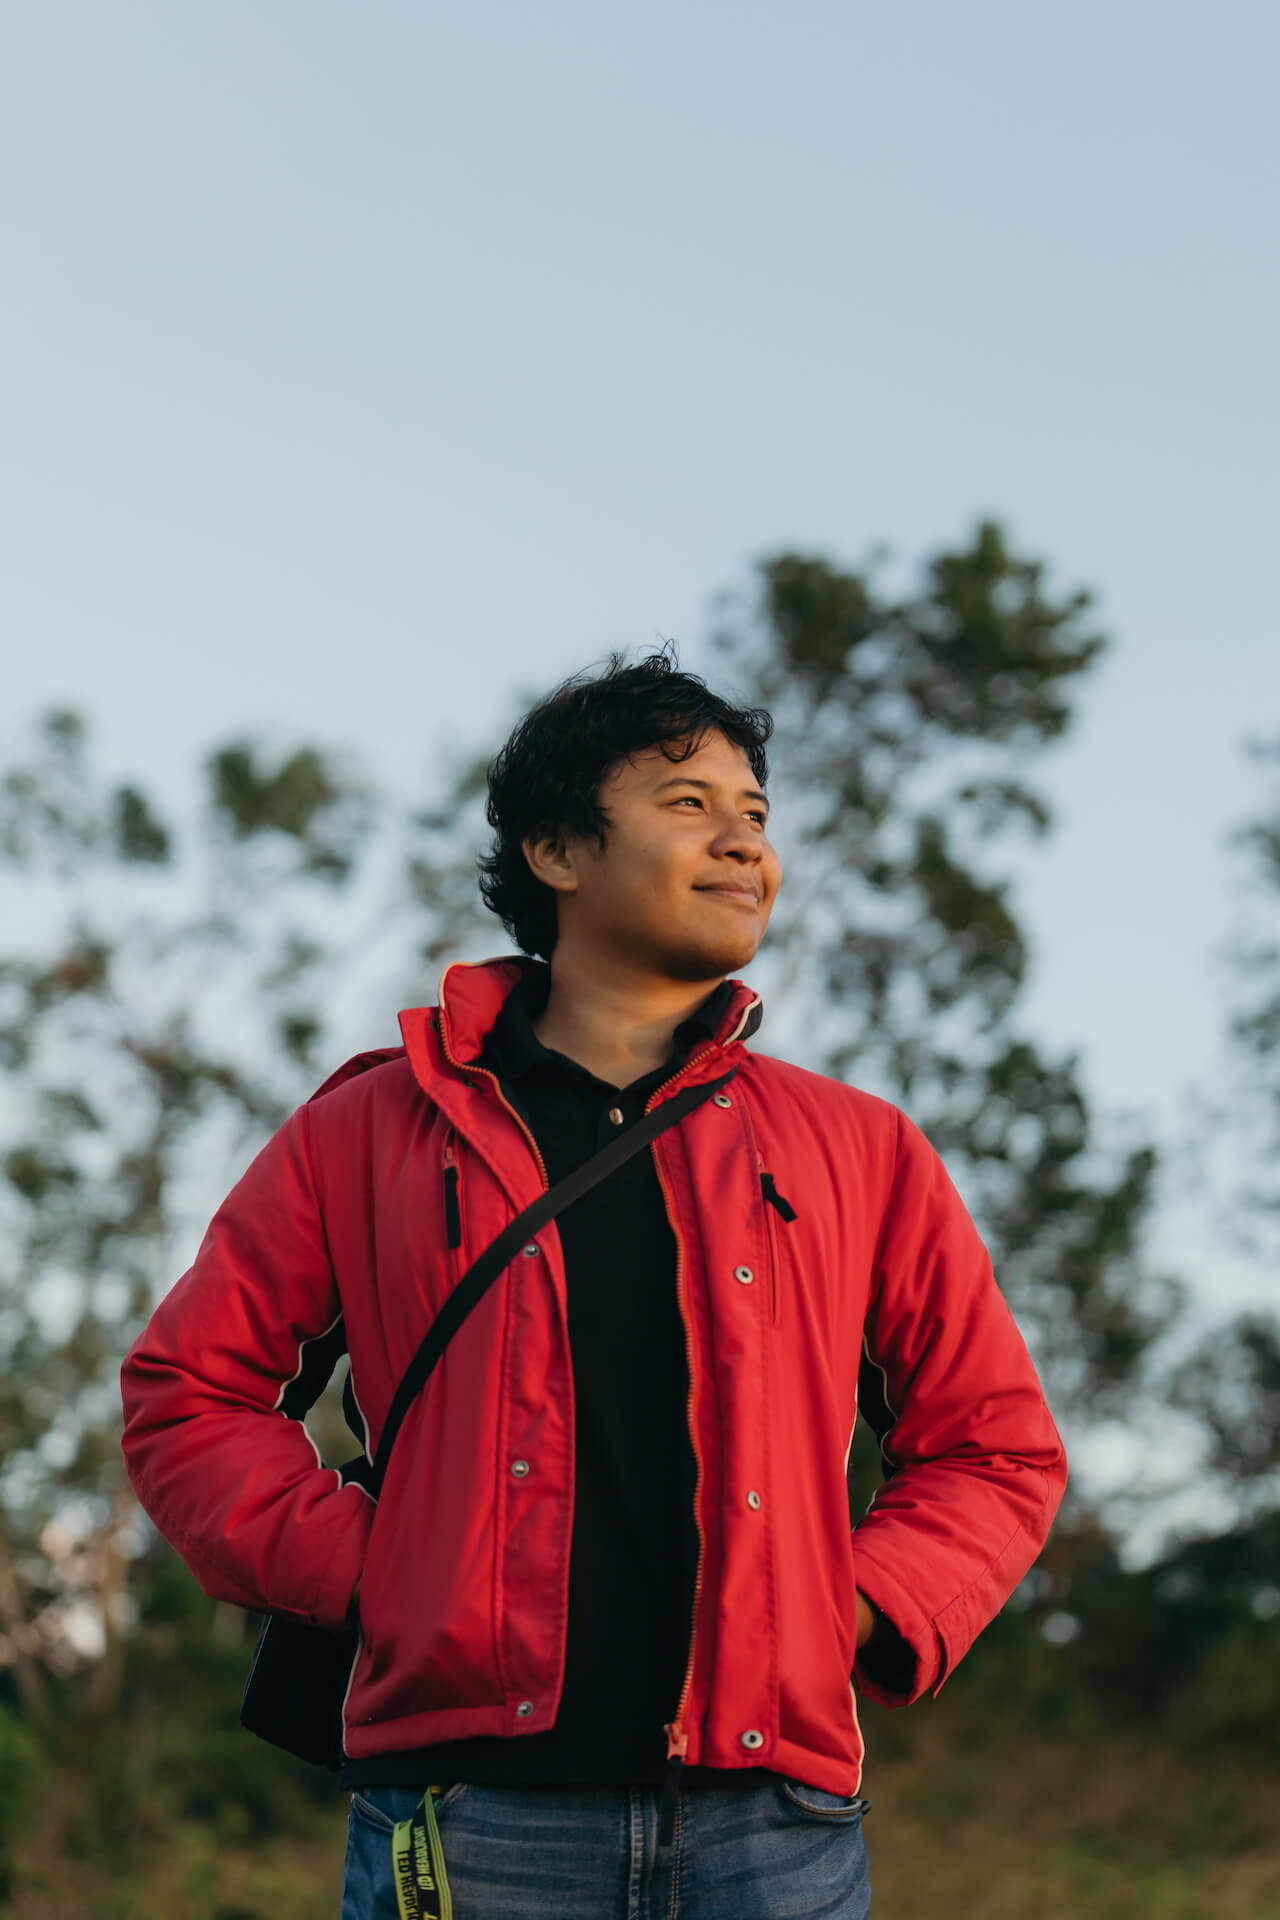 Khristian Dimacali of the Philippine Astronomical Society